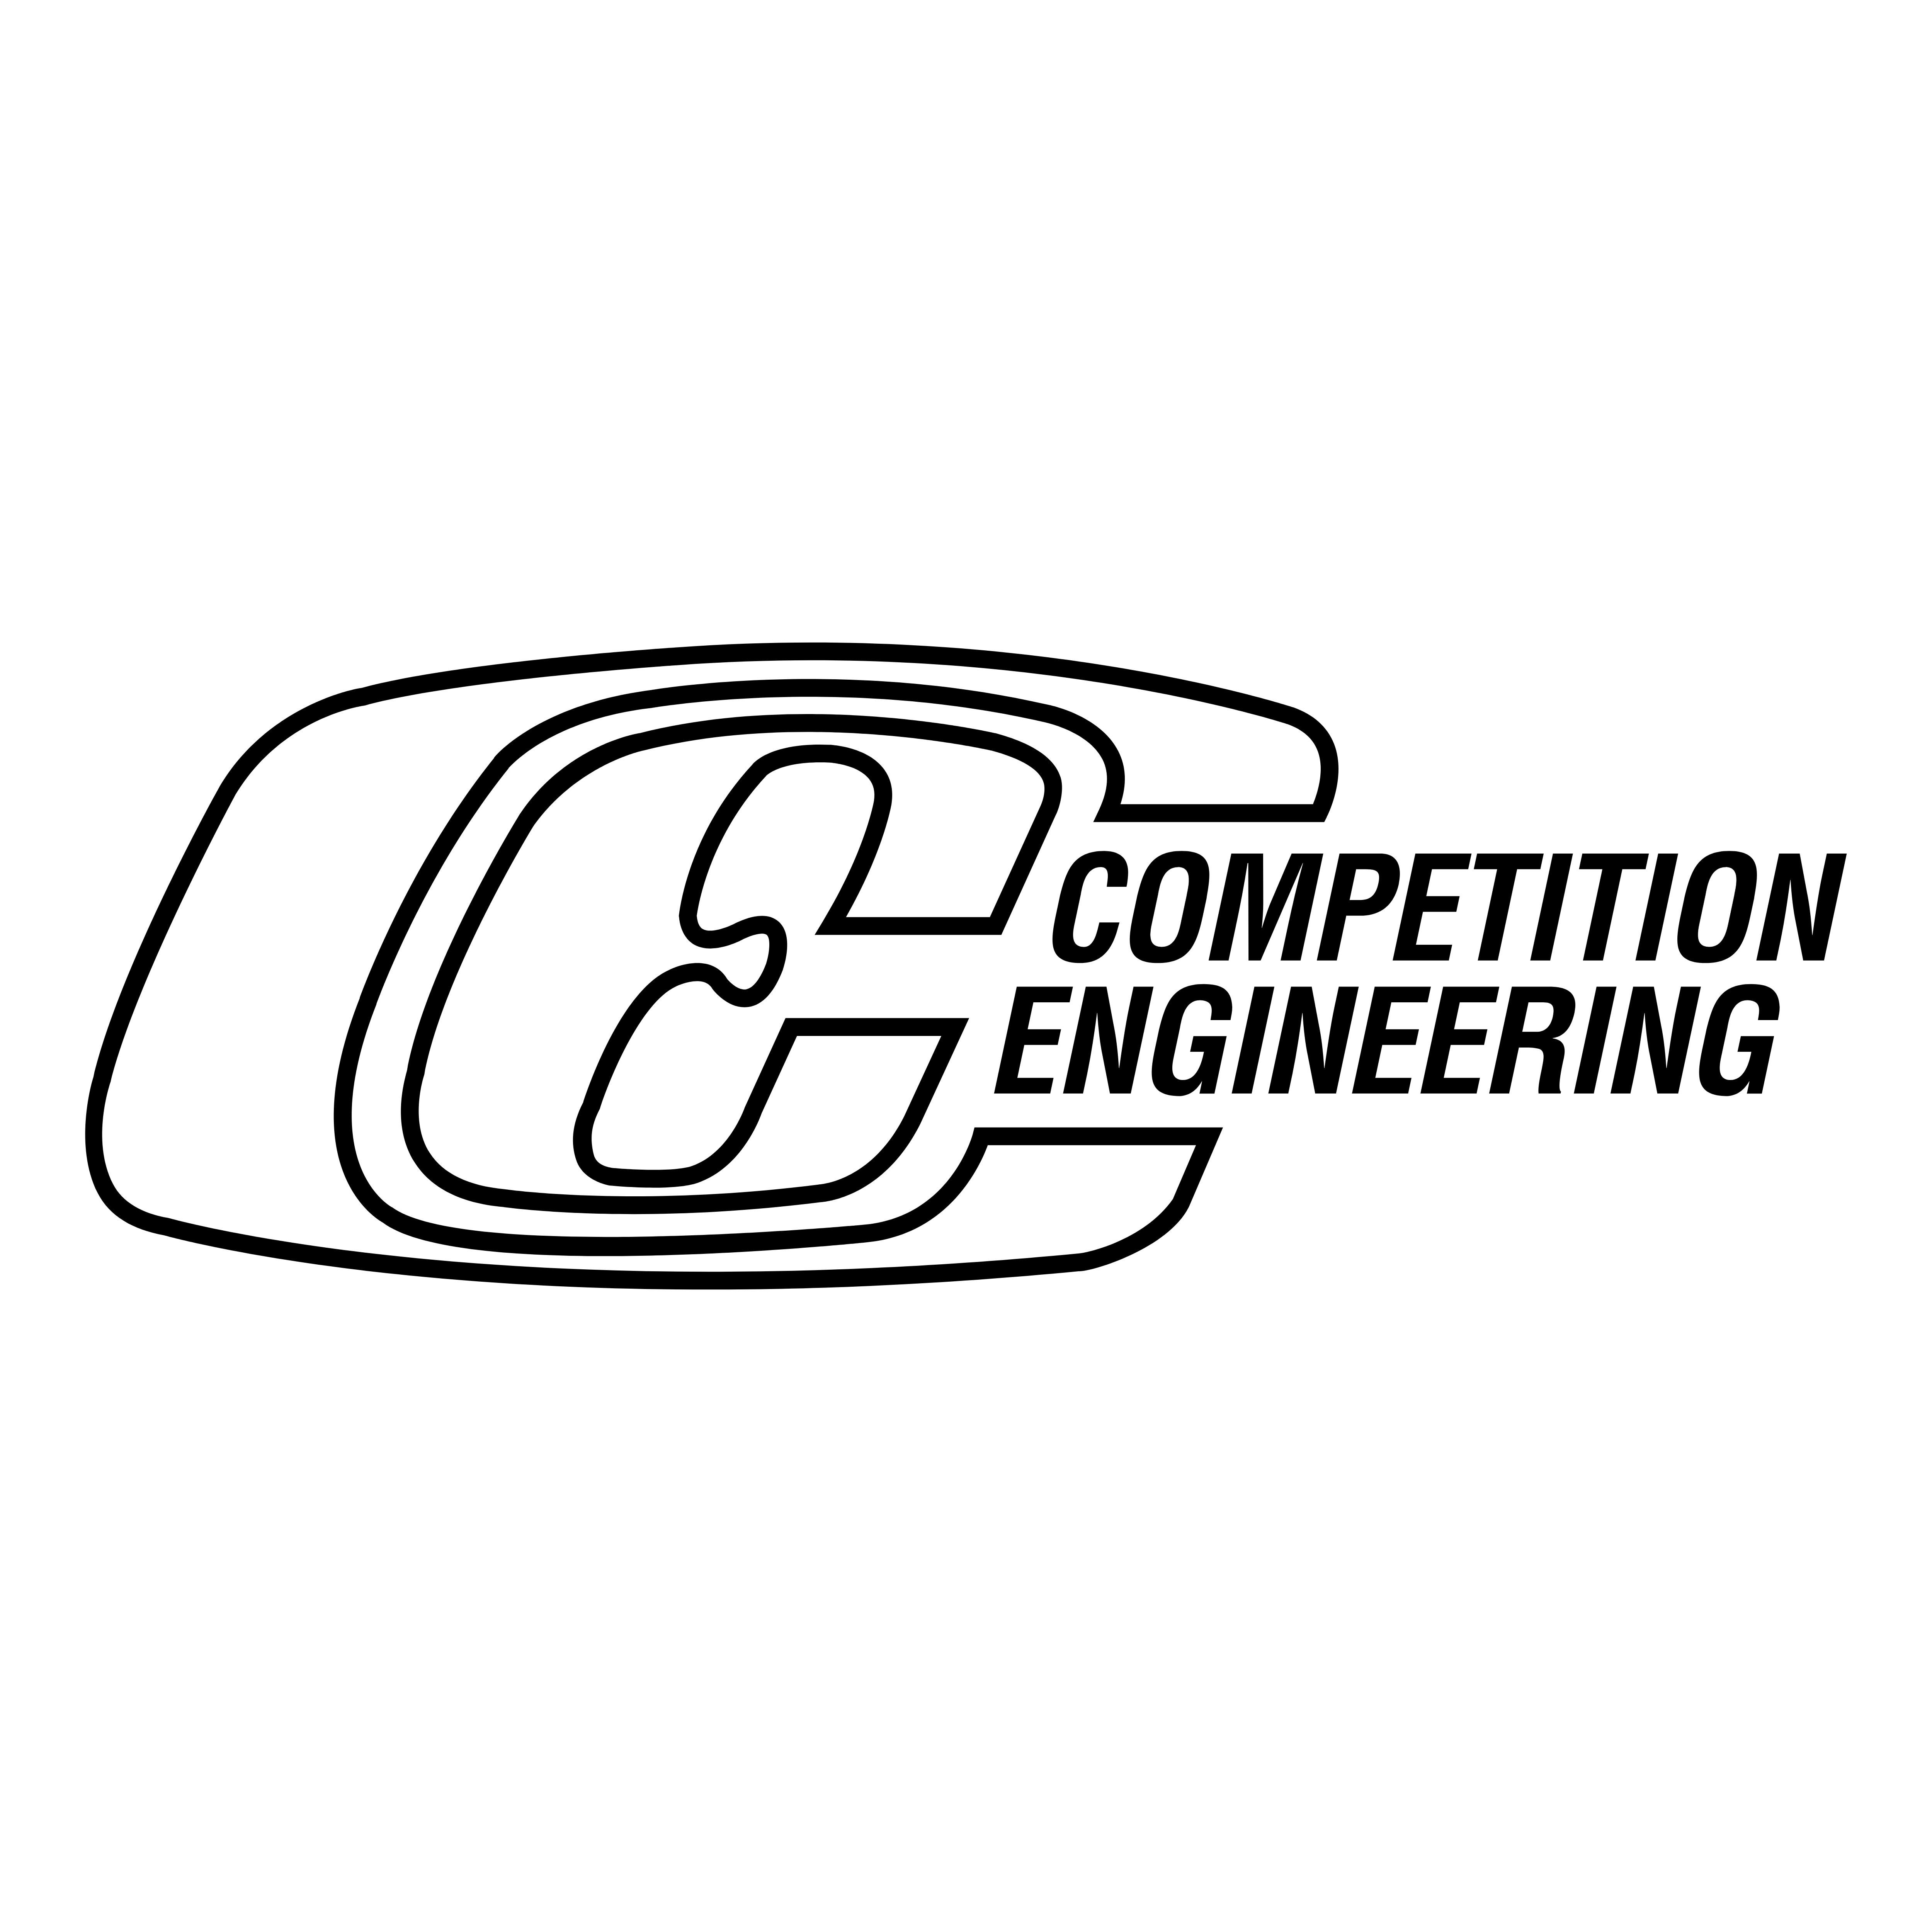 competition engineering  u2013 logos download